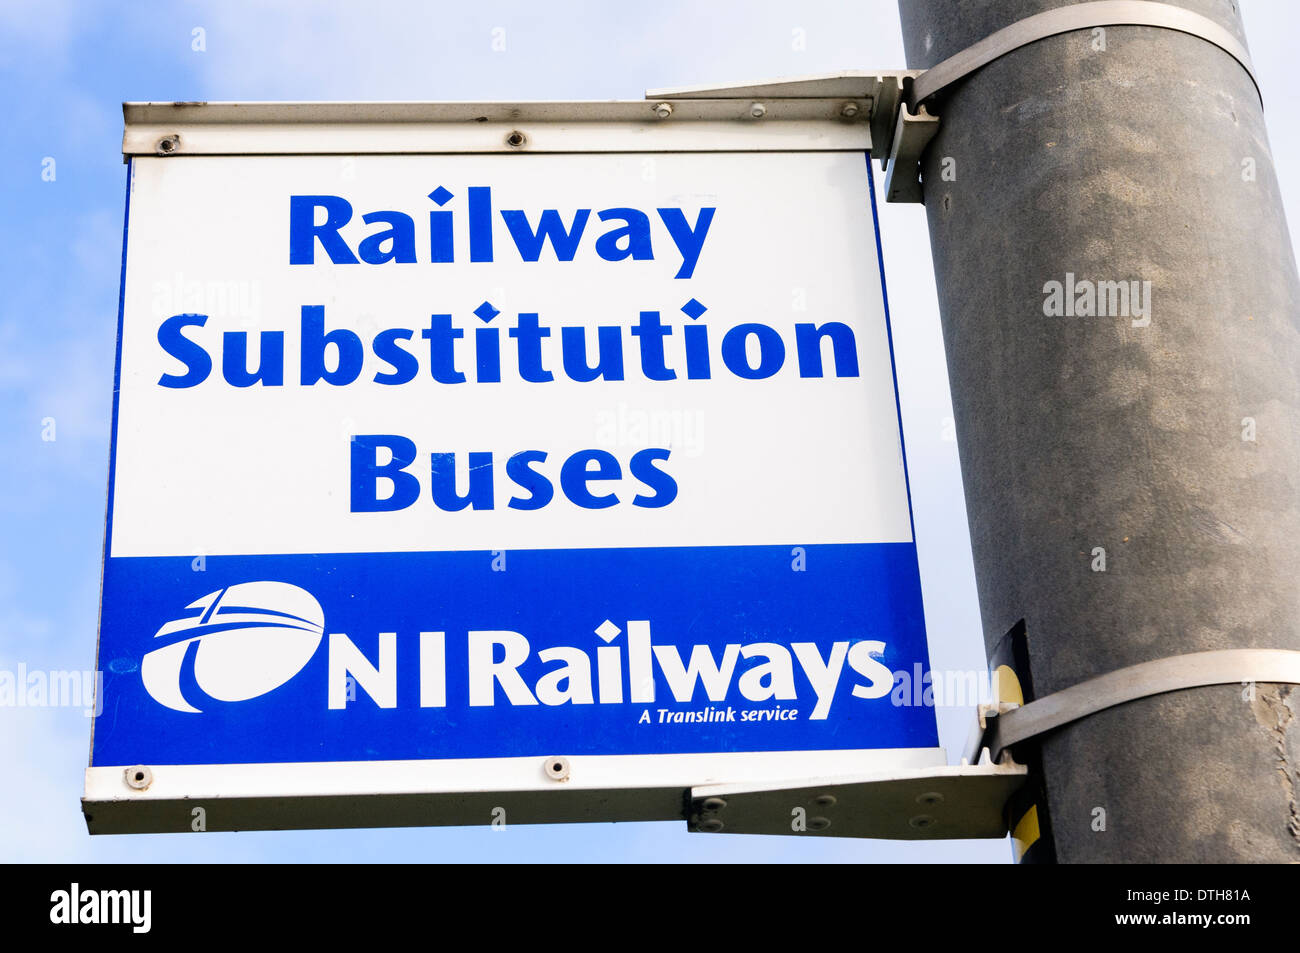 Sign saying 'Railway Substitution Buses' for Northern Ireland Railways NI, run by Translink - Stock Image